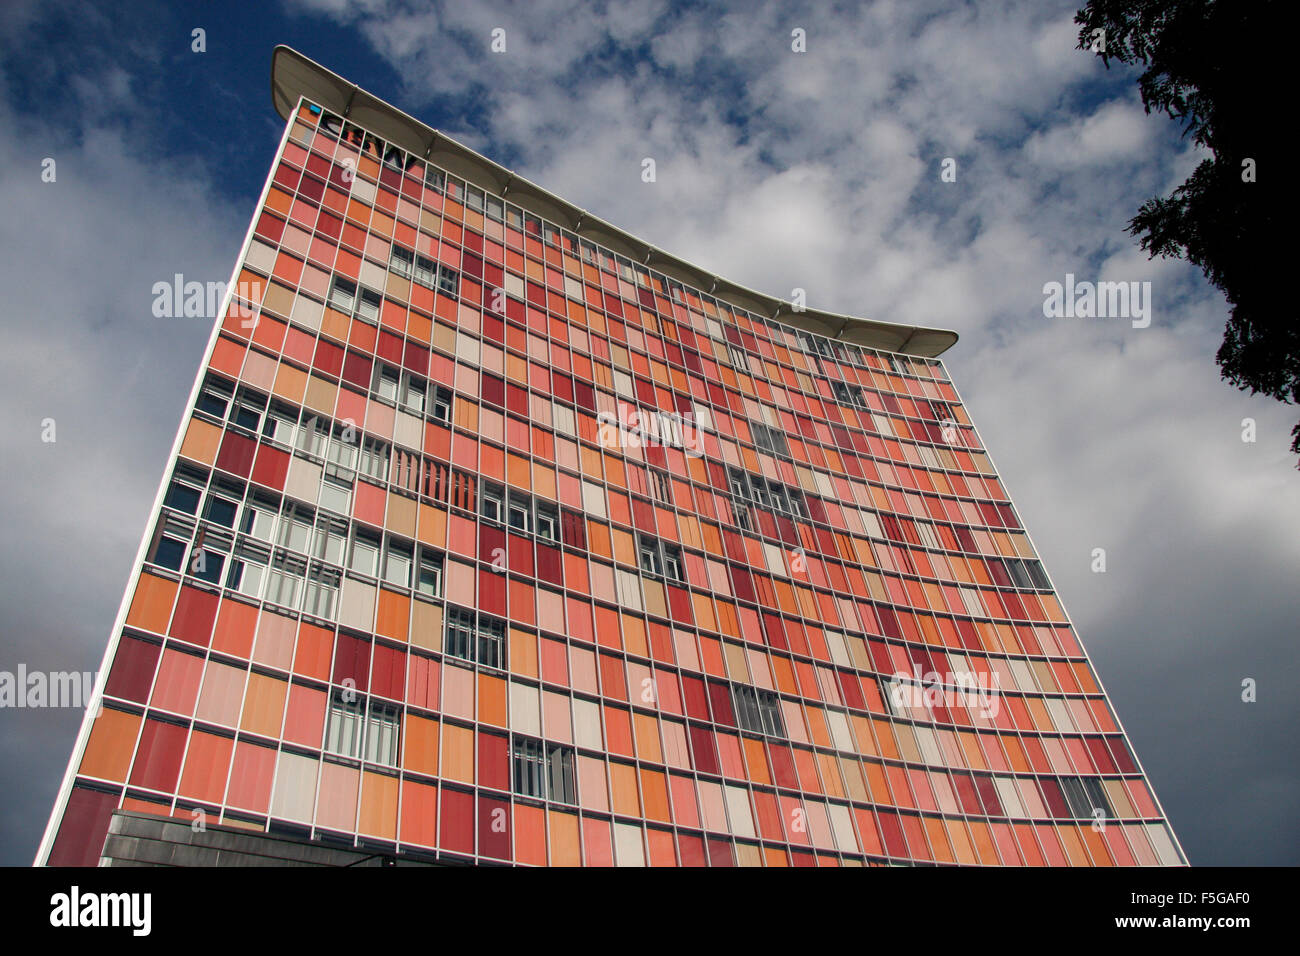 the 'GSW-Hochhaus', the new headquarters for the Internet startup Incubator 'Rocket Internet', Berlin - Stock Image